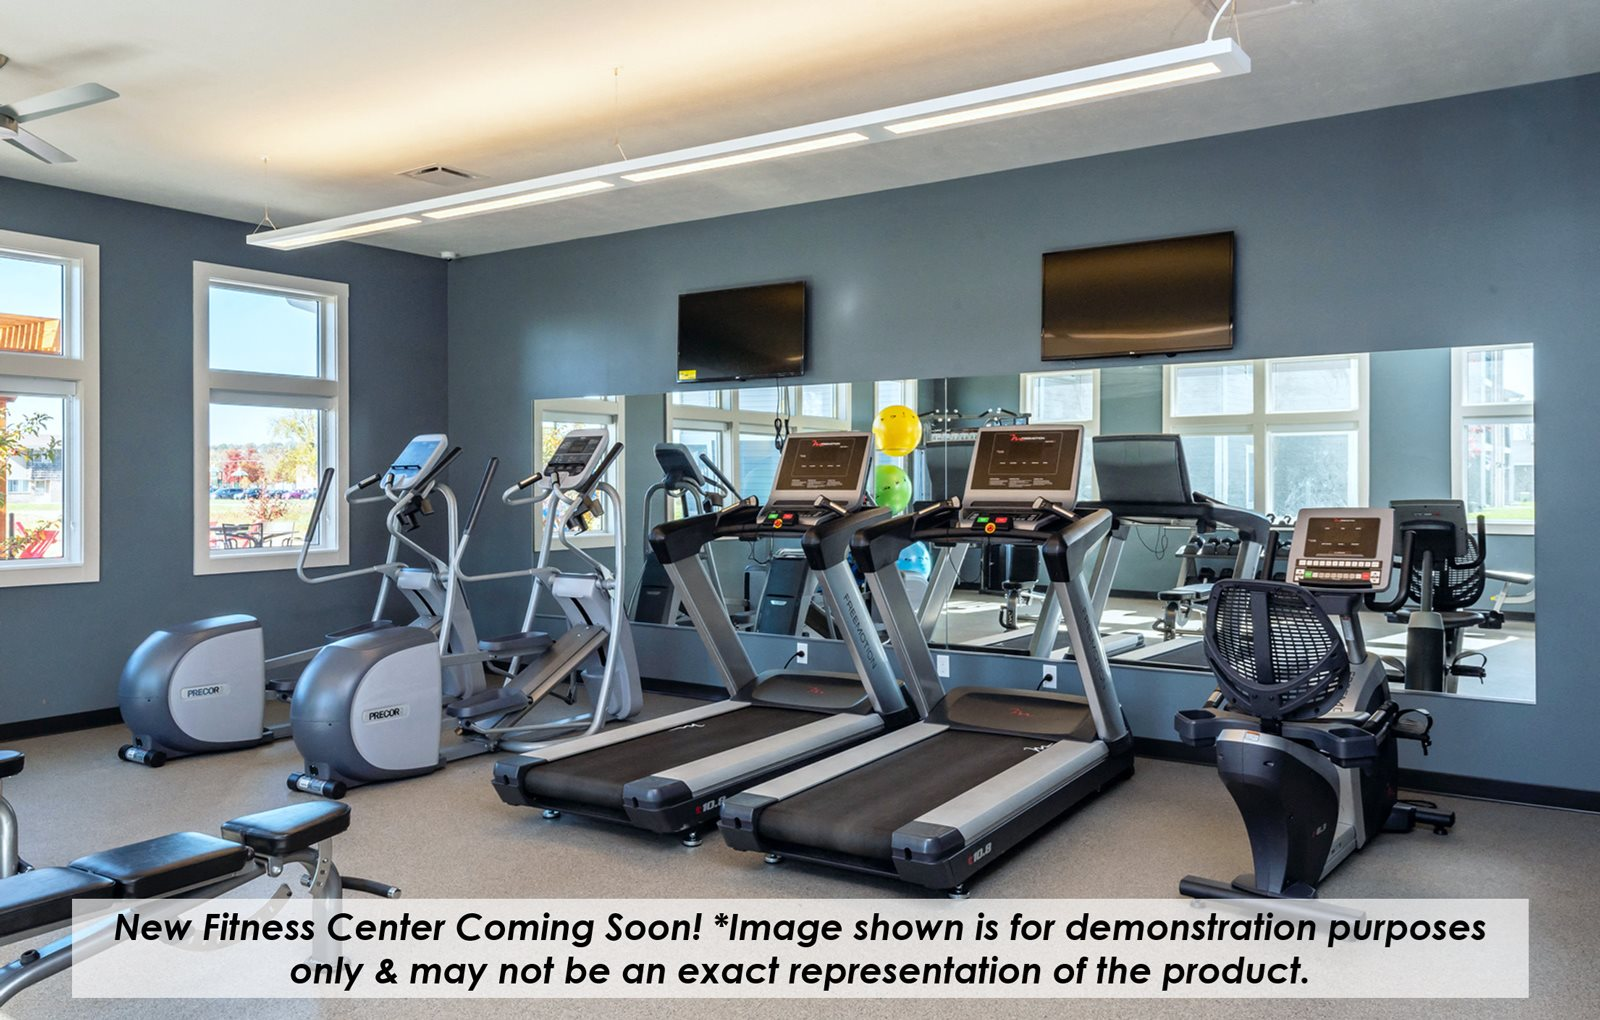 New Fitness Center Example